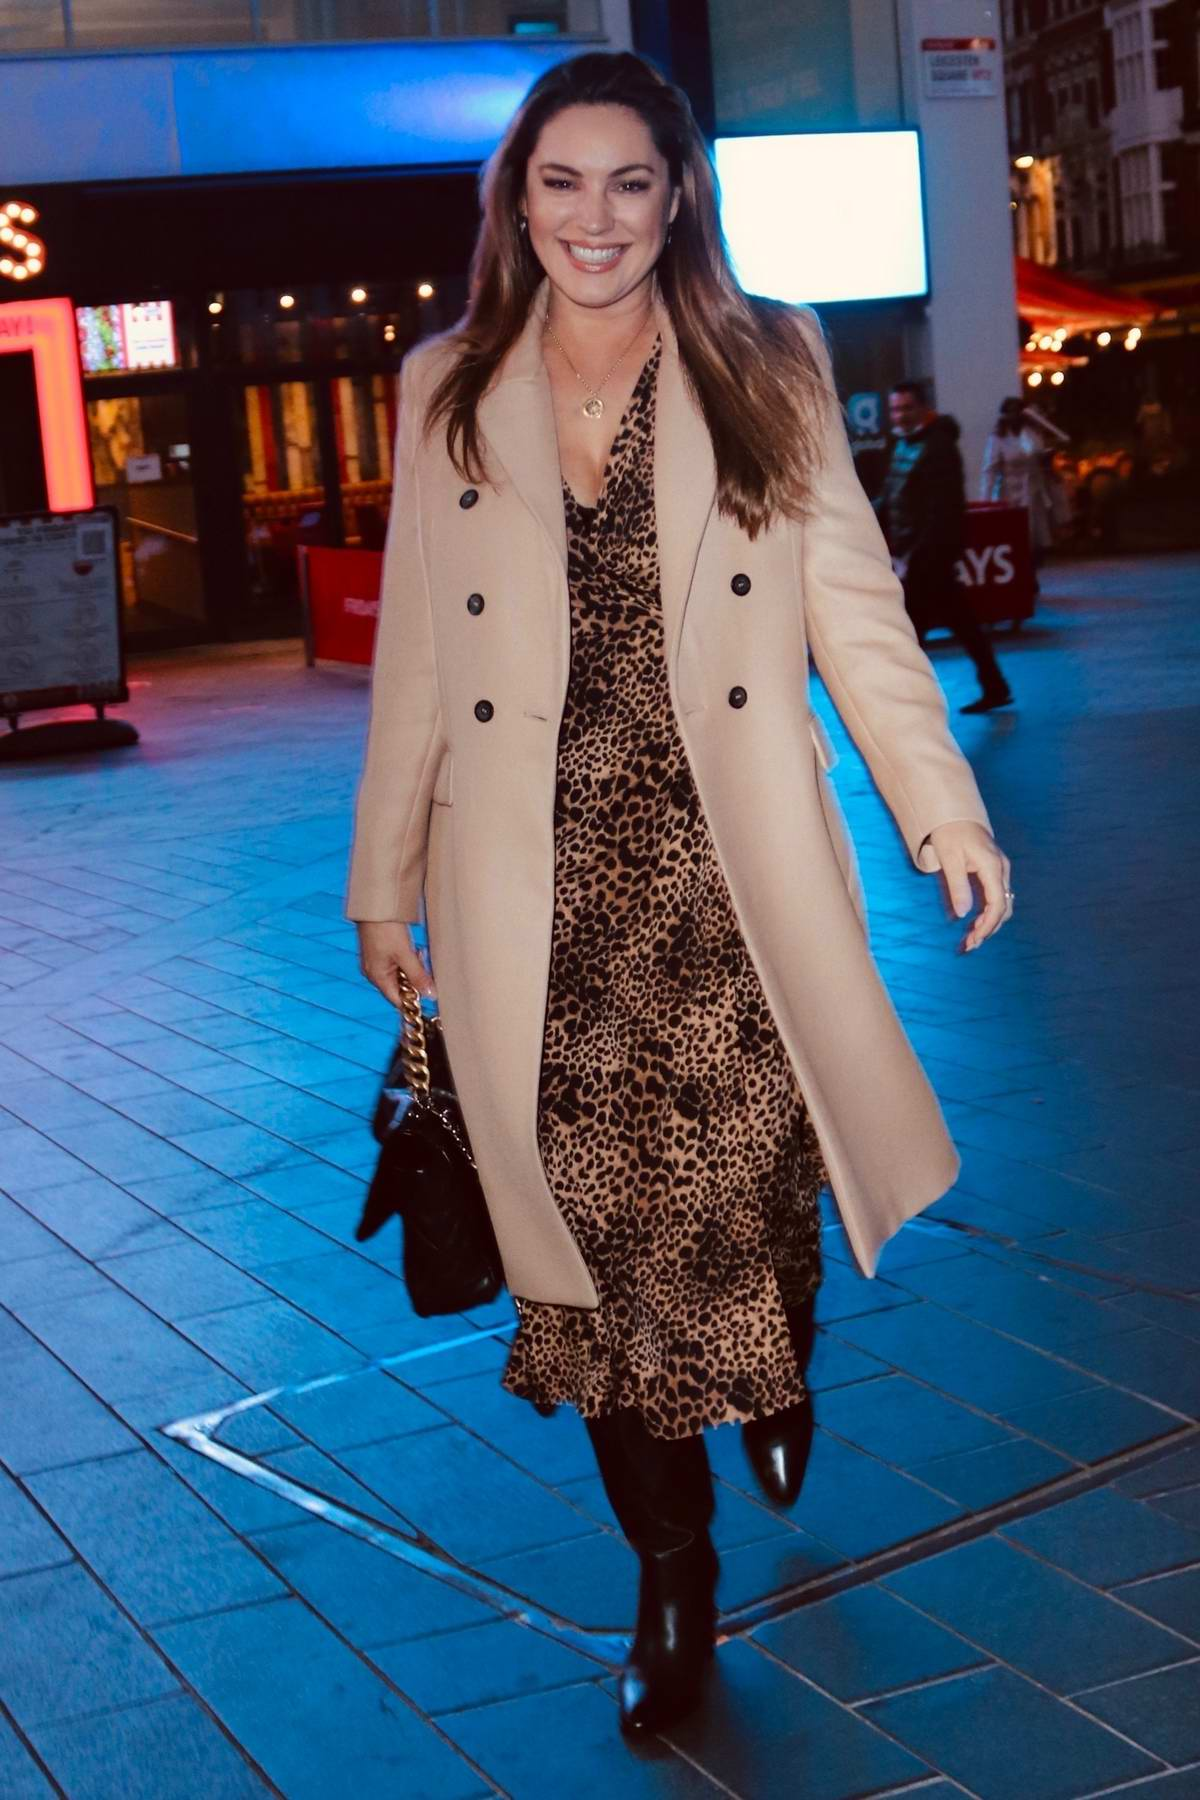 Kelly Brook is all smiles as she leaves the Global Radio wearing an animal print dress in London, UK